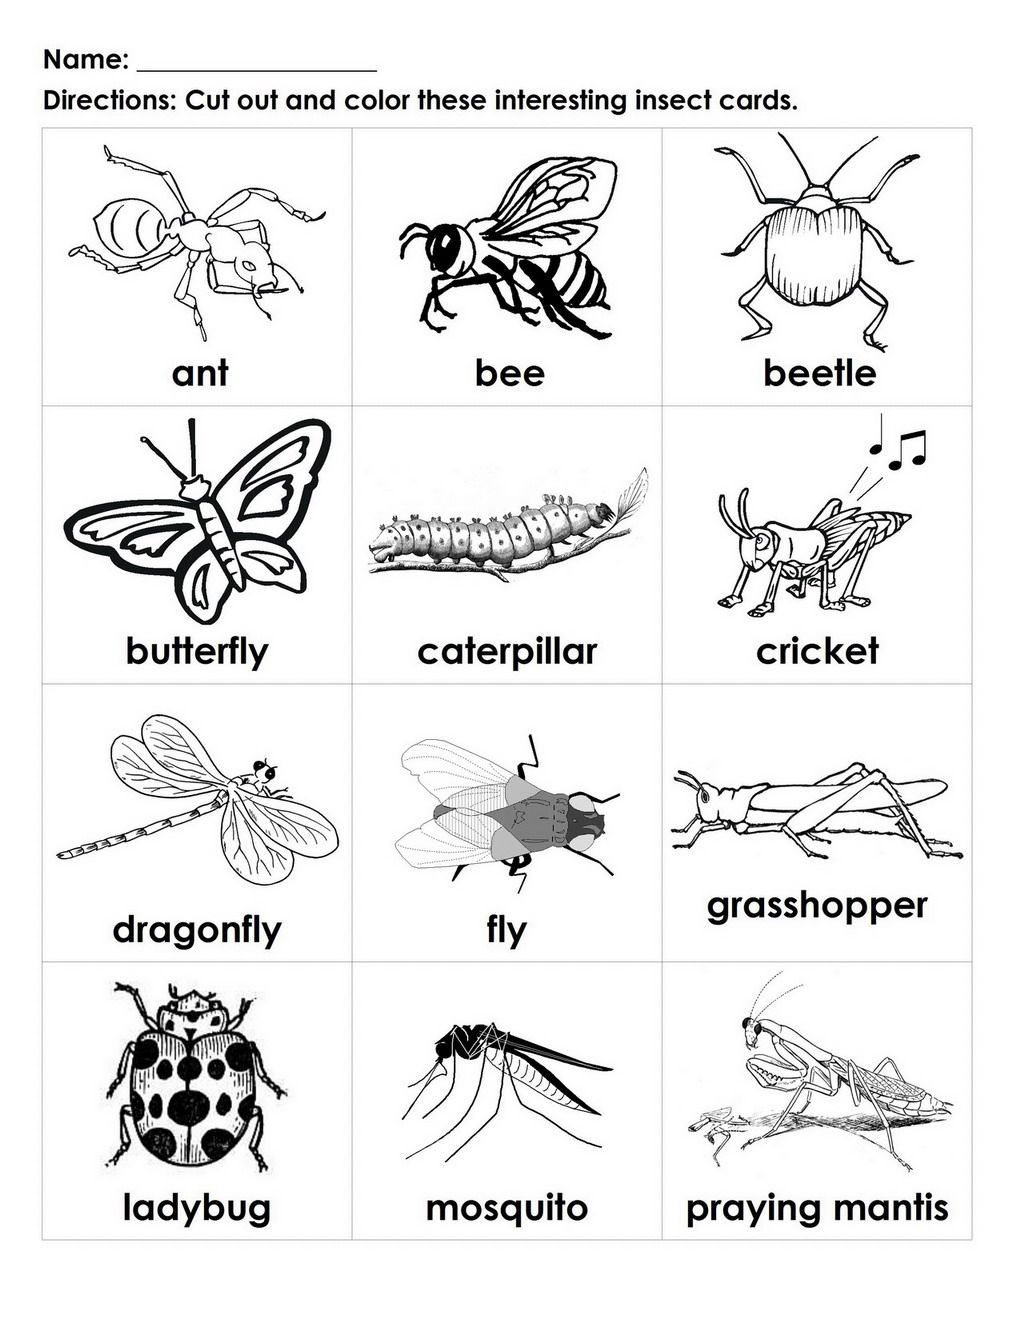 bugs for kids to color   Interesting Insects blackwhite cards